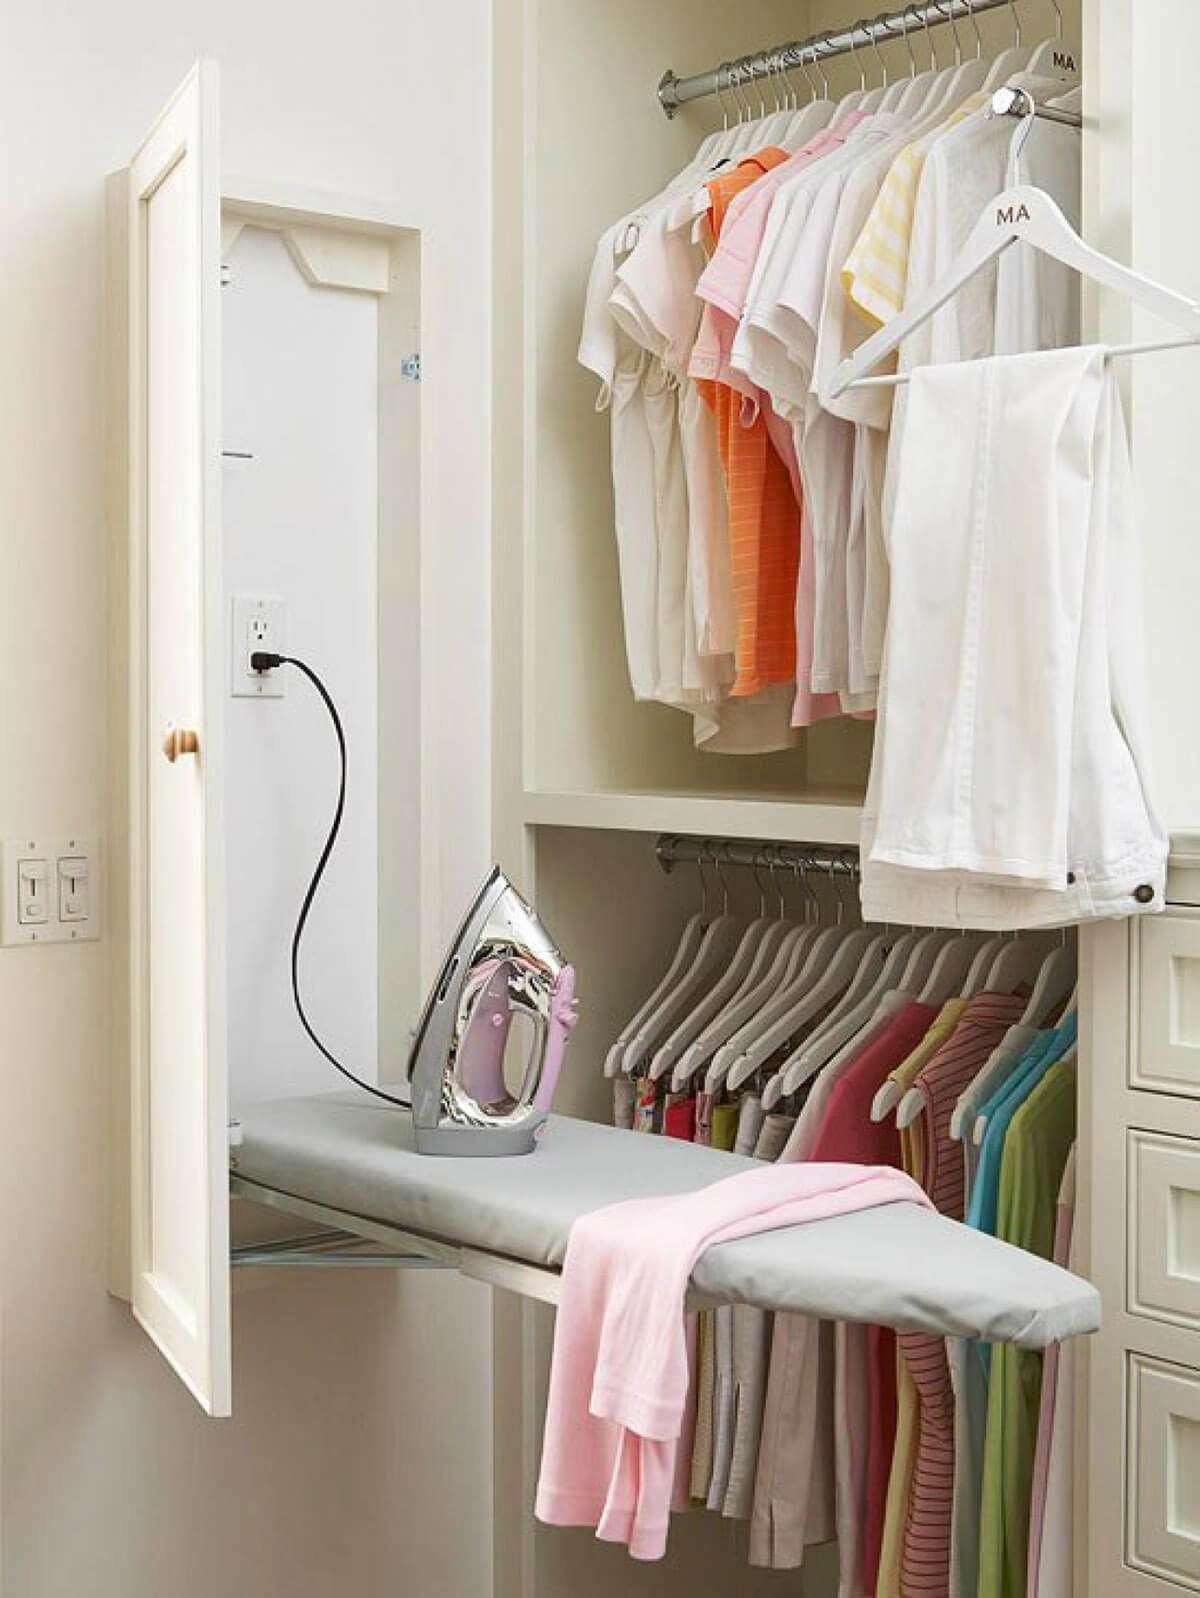 Space Saving Wardrobe Ideas This Fold Up Ironing Board Is A Closet Space Saving Essential